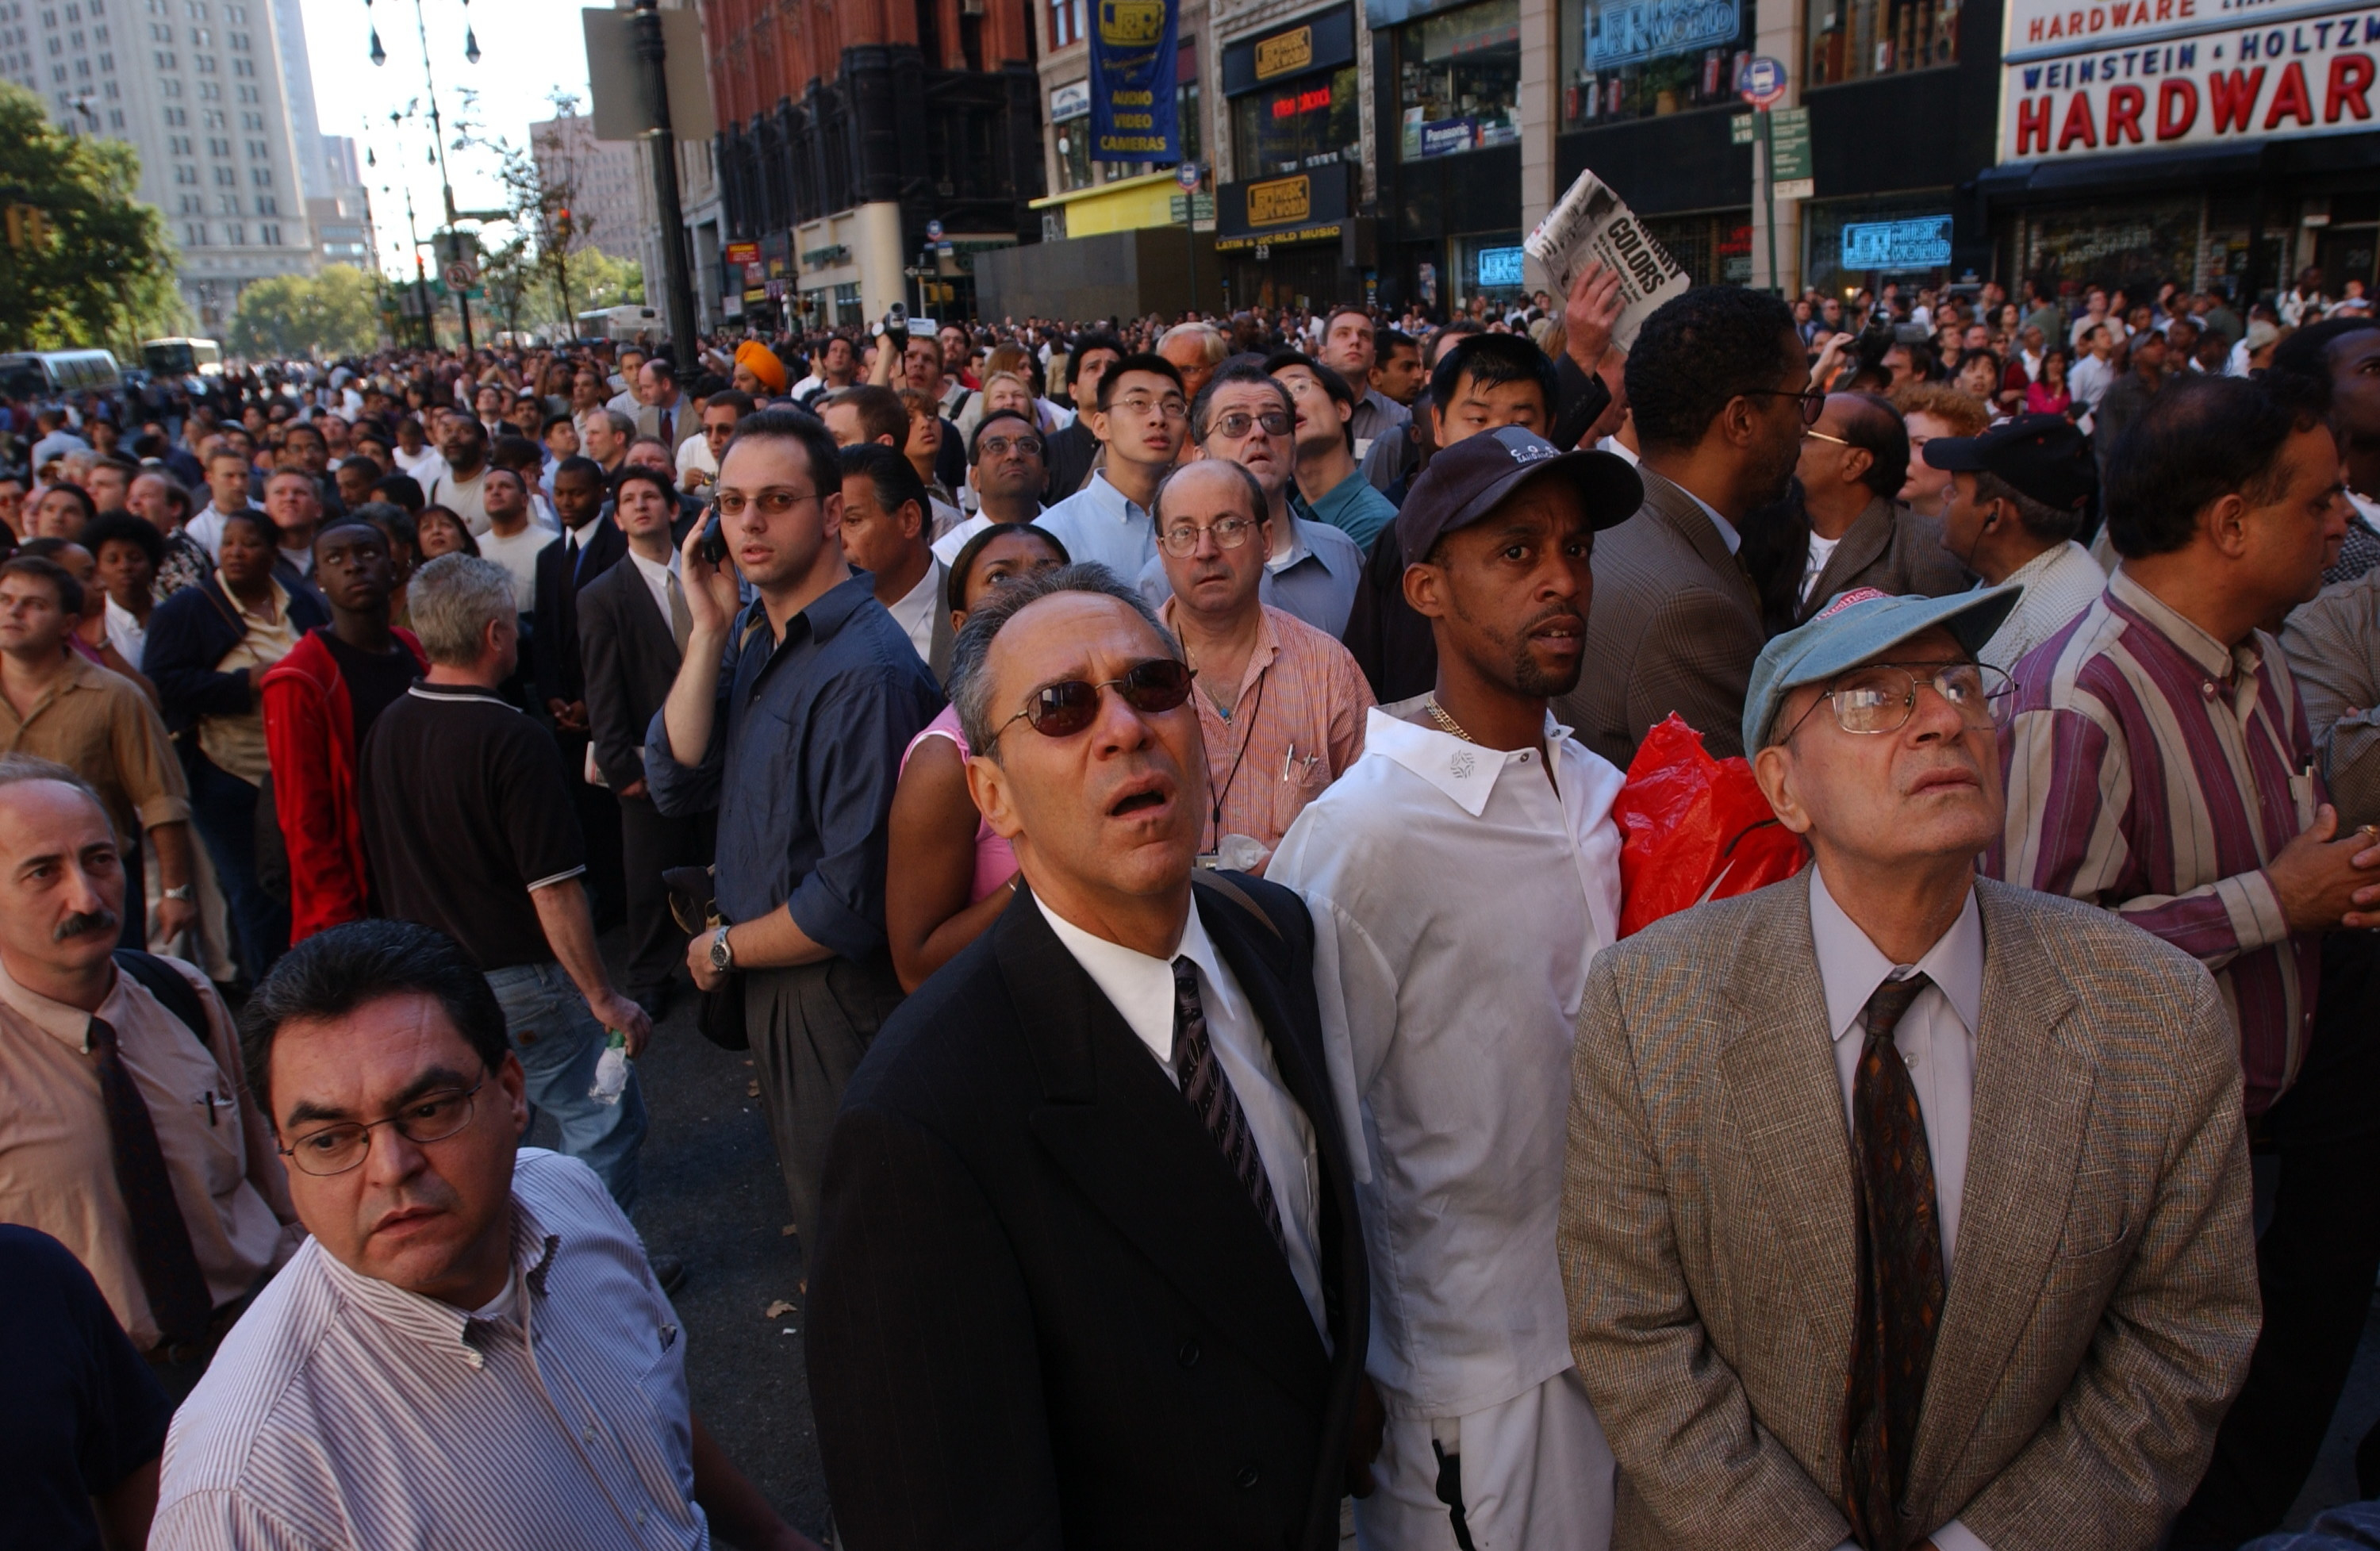 A crowd of people in business clothes looking up